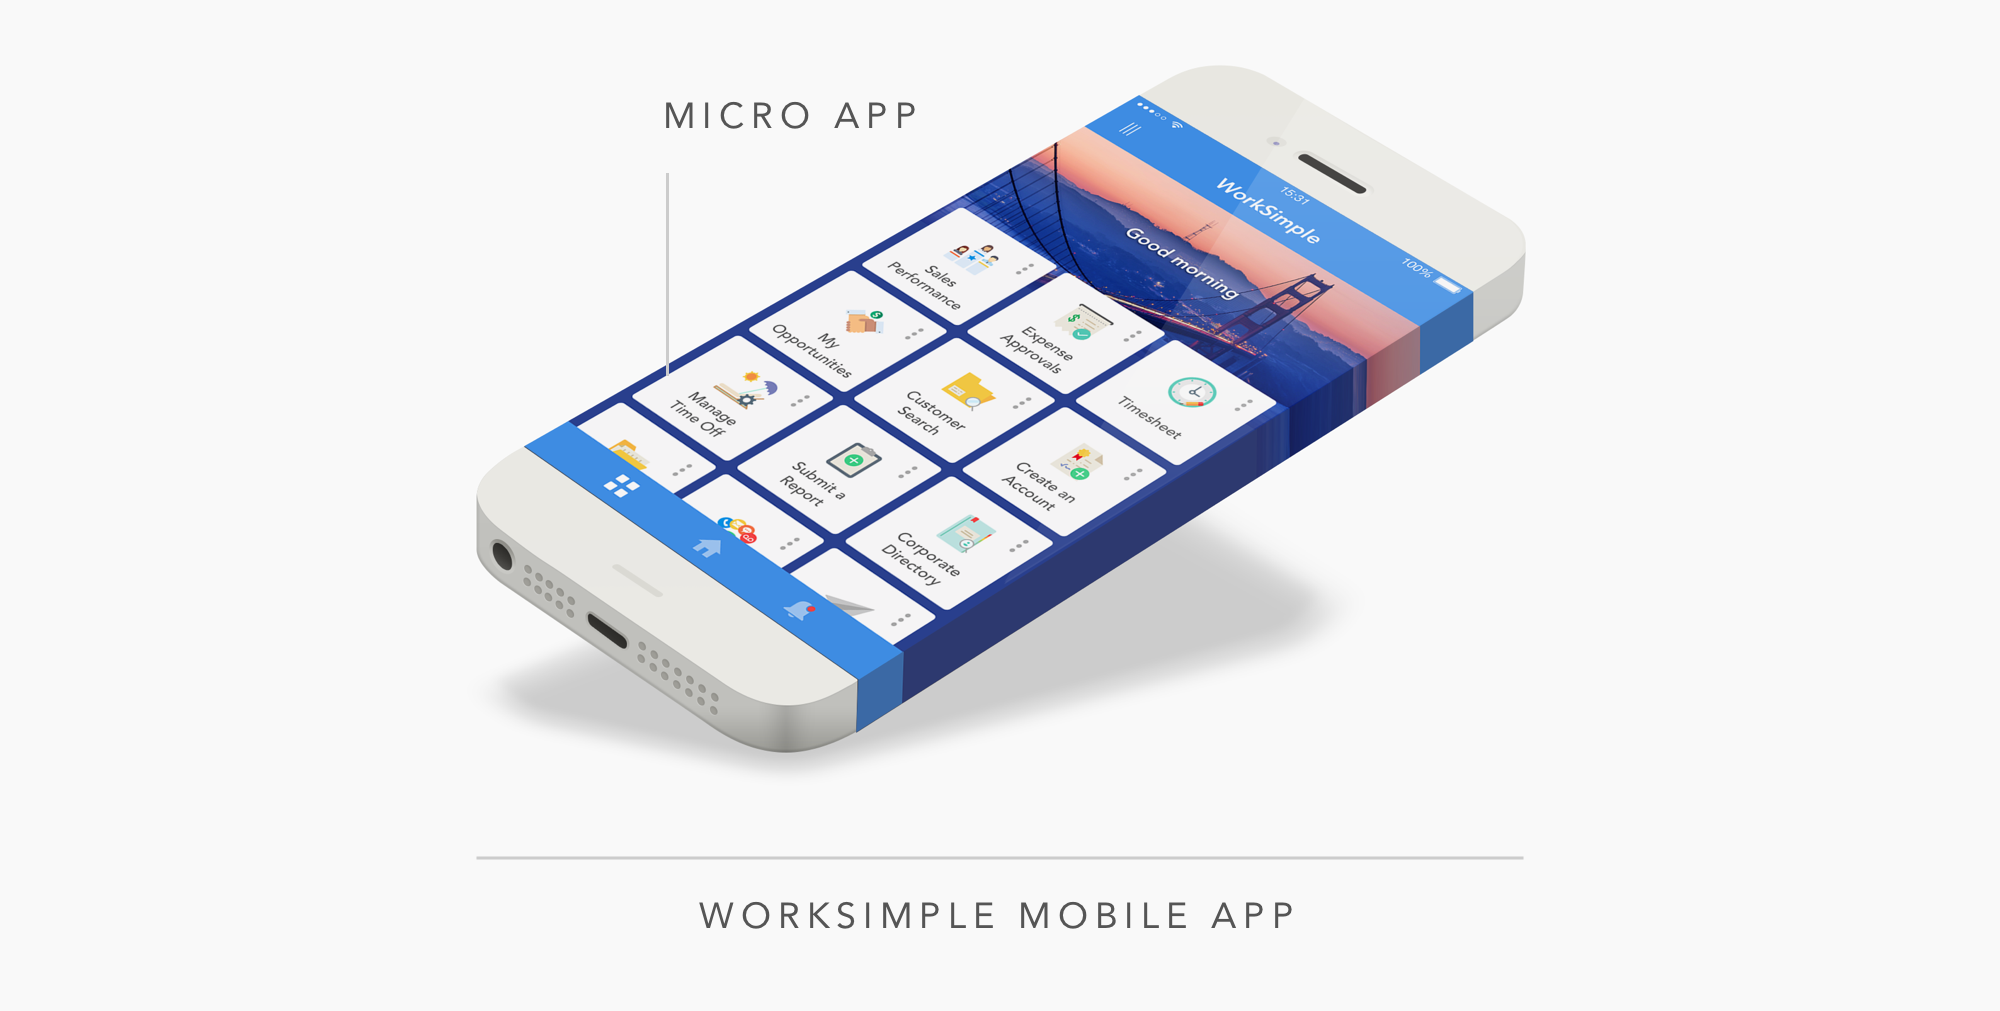 Micro apps are embedded in our app WorkSimple.